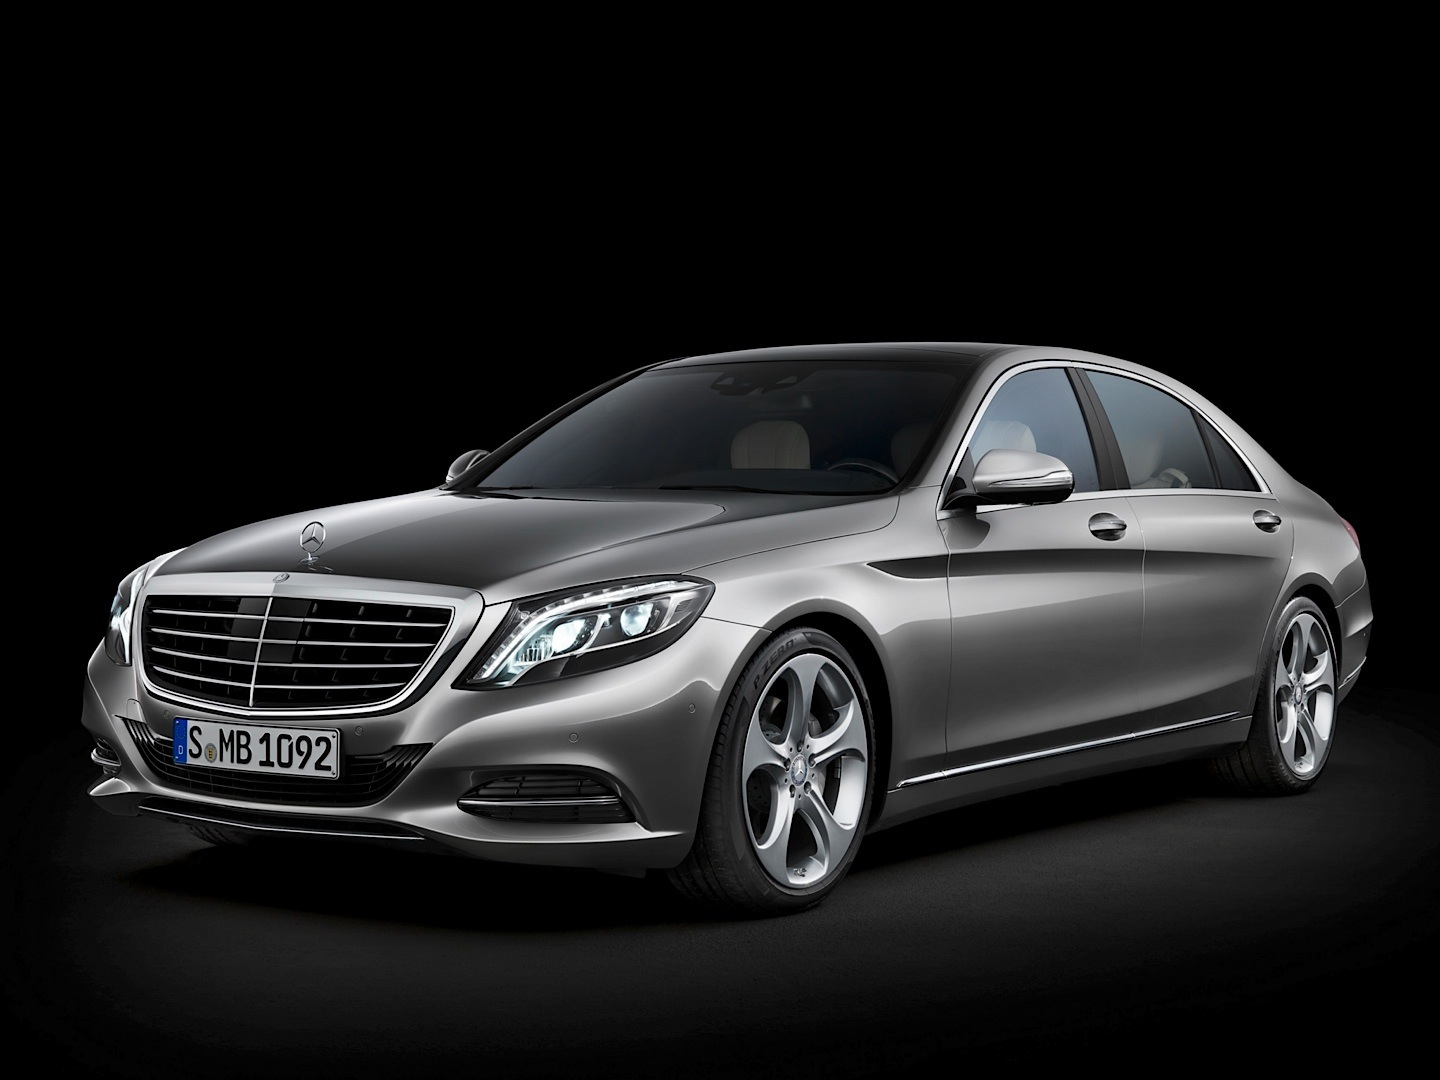 the mercedes benz s class w222 is edmund 39 s best luxury. Black Bedroom Furniture Sets. Home Design Ideas